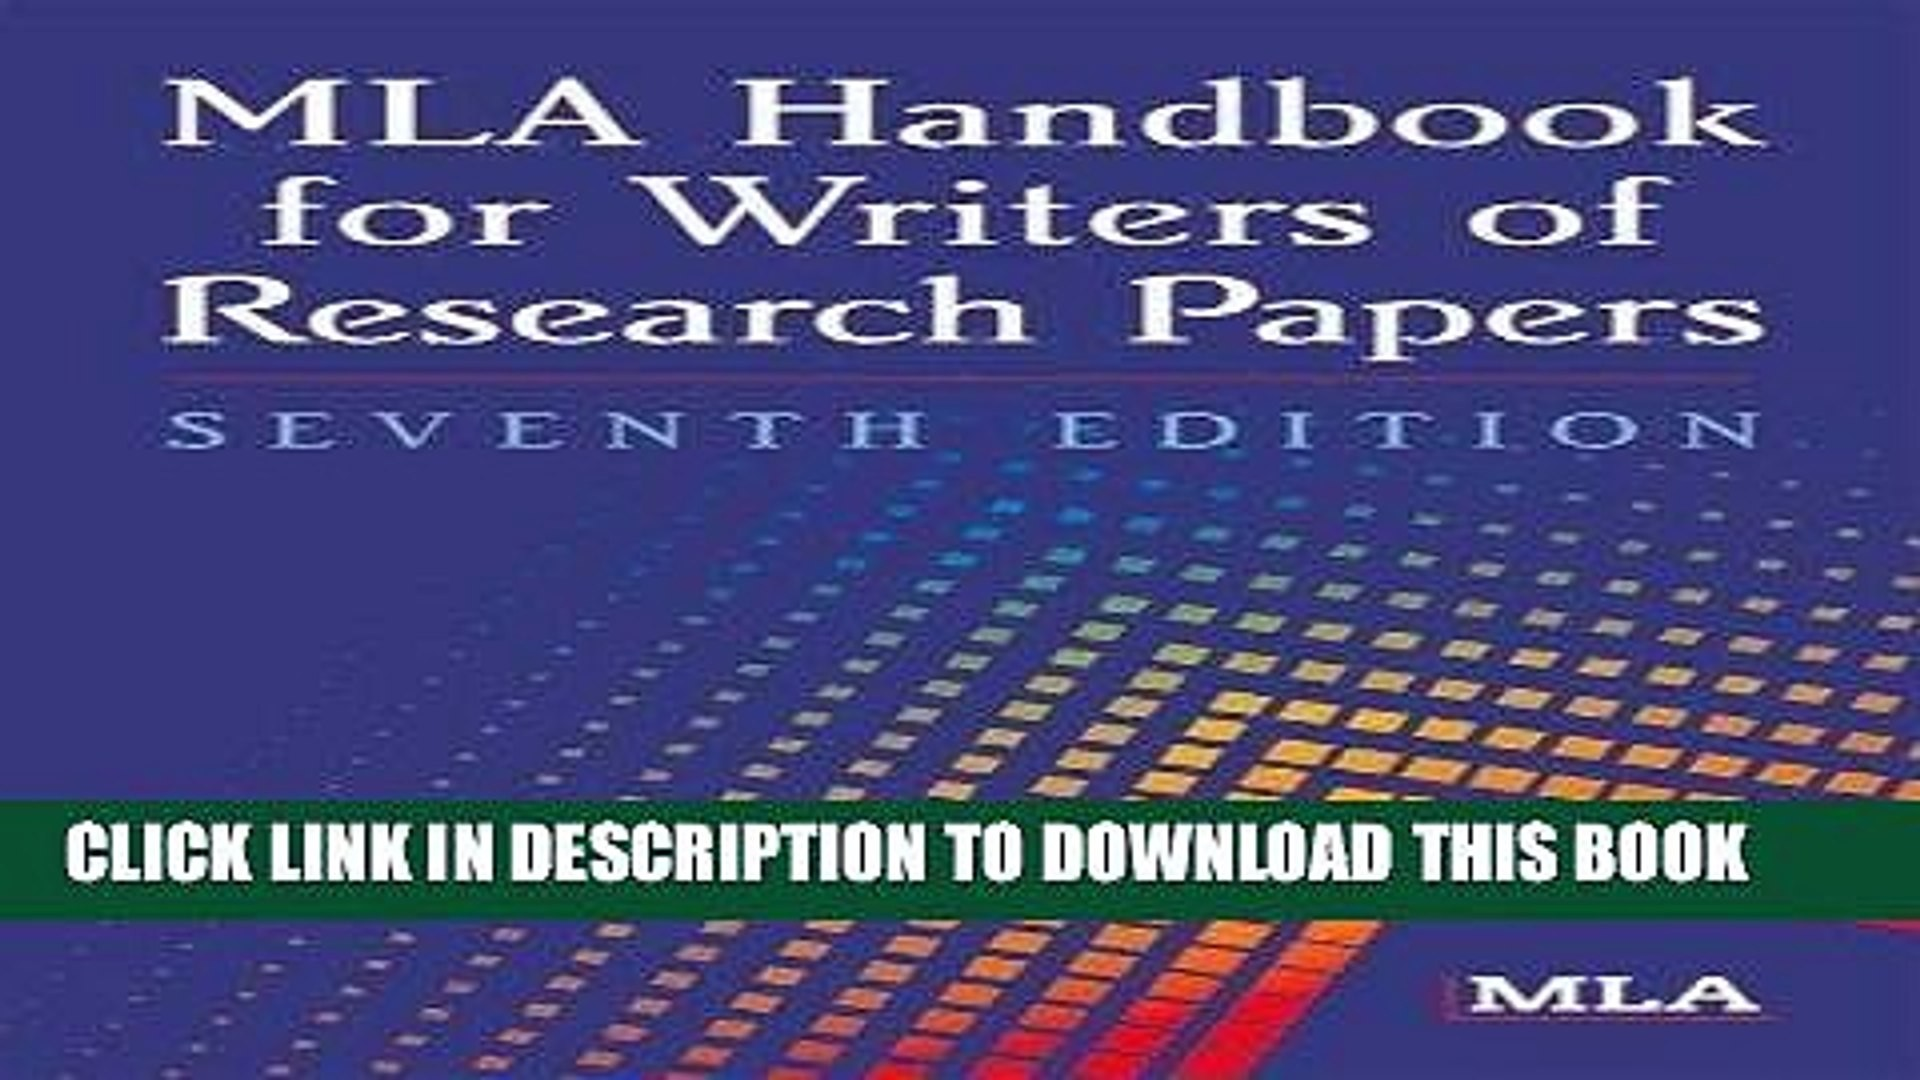 006 Research Paper Mla Handbook For Writing Papers X1080 Frightening Writers Of 8th Edition Pdf Free Download According To The 1920